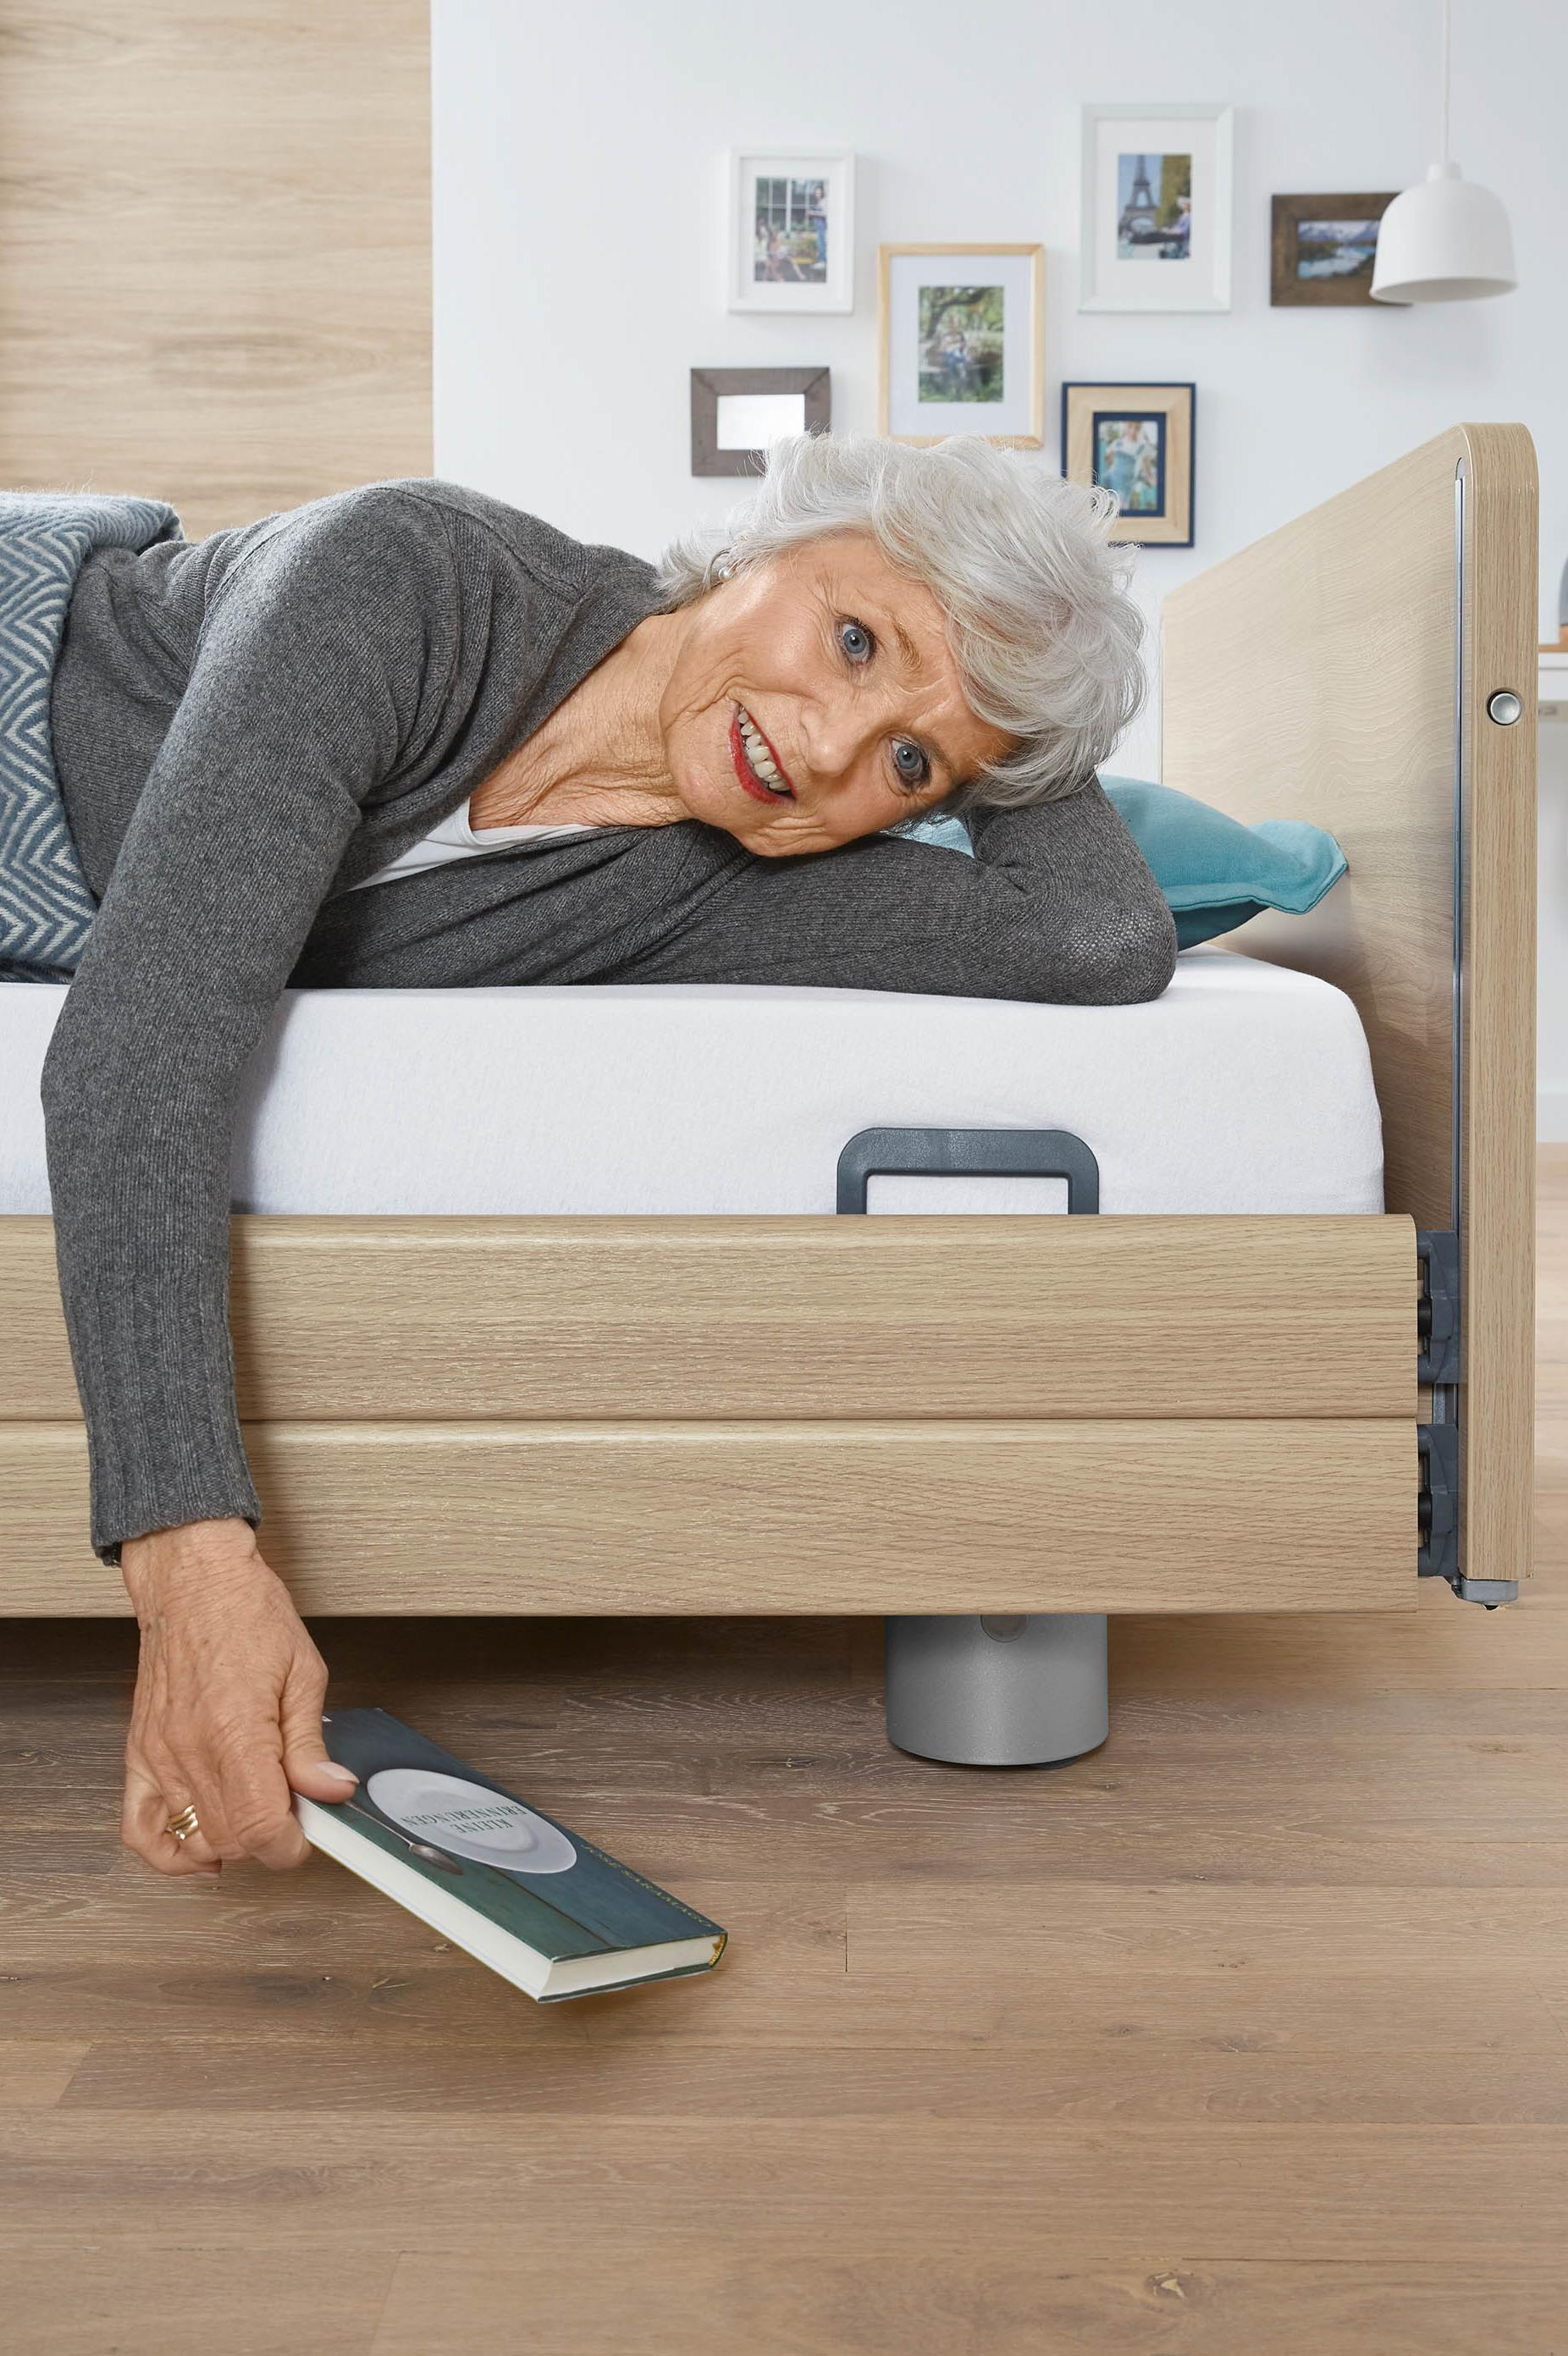 Fall prevention with the Elvido vervo low-height bed